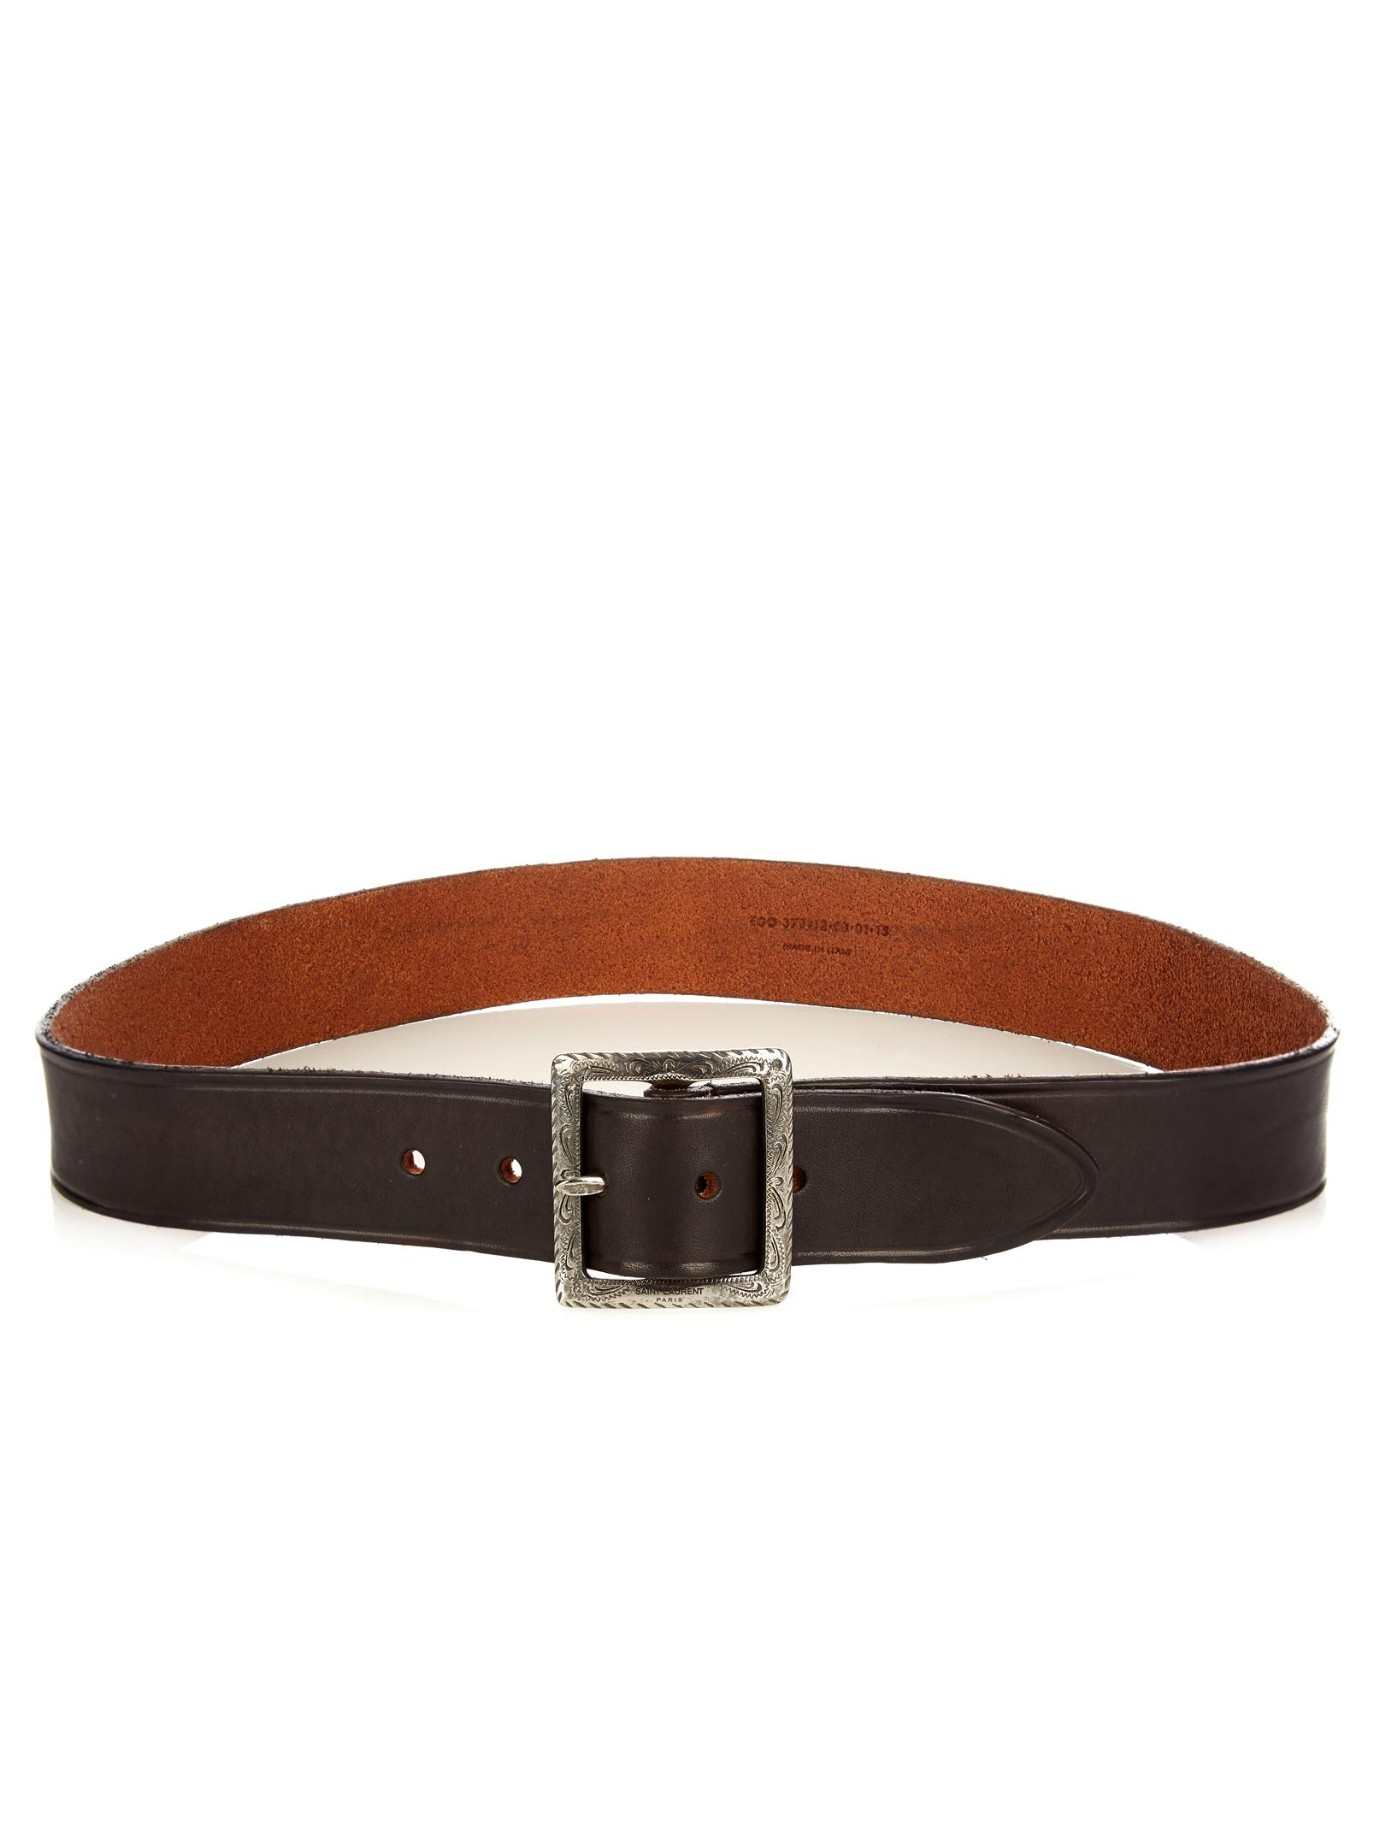 embossed belt - Brown Saint Laurent SqJYD5M